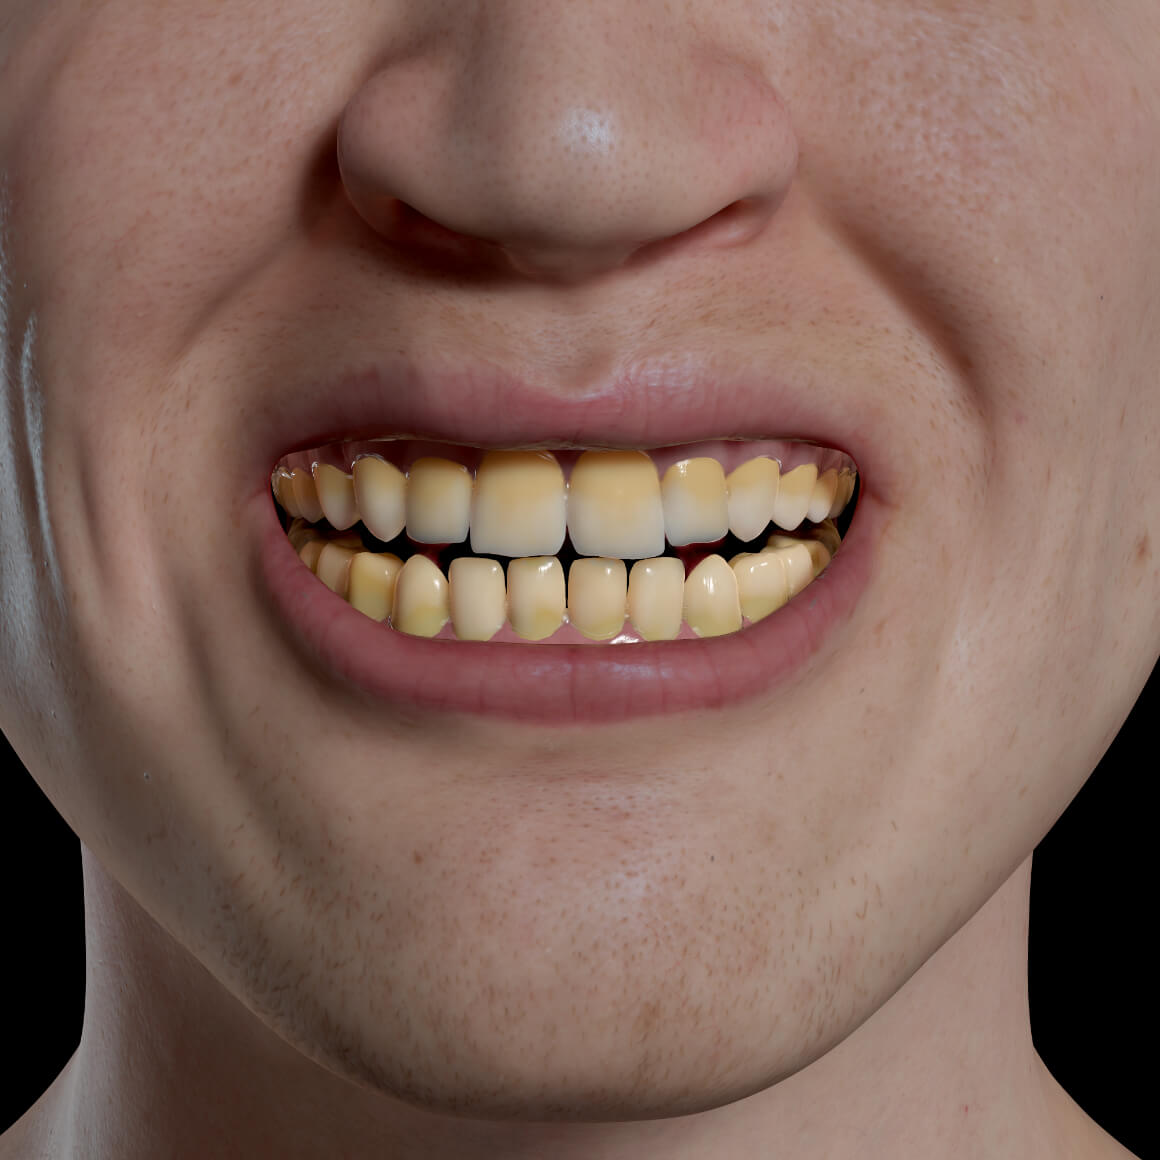 Smile of a Clinique Chloé patient positioned face-on showing discolored, yellow teeth